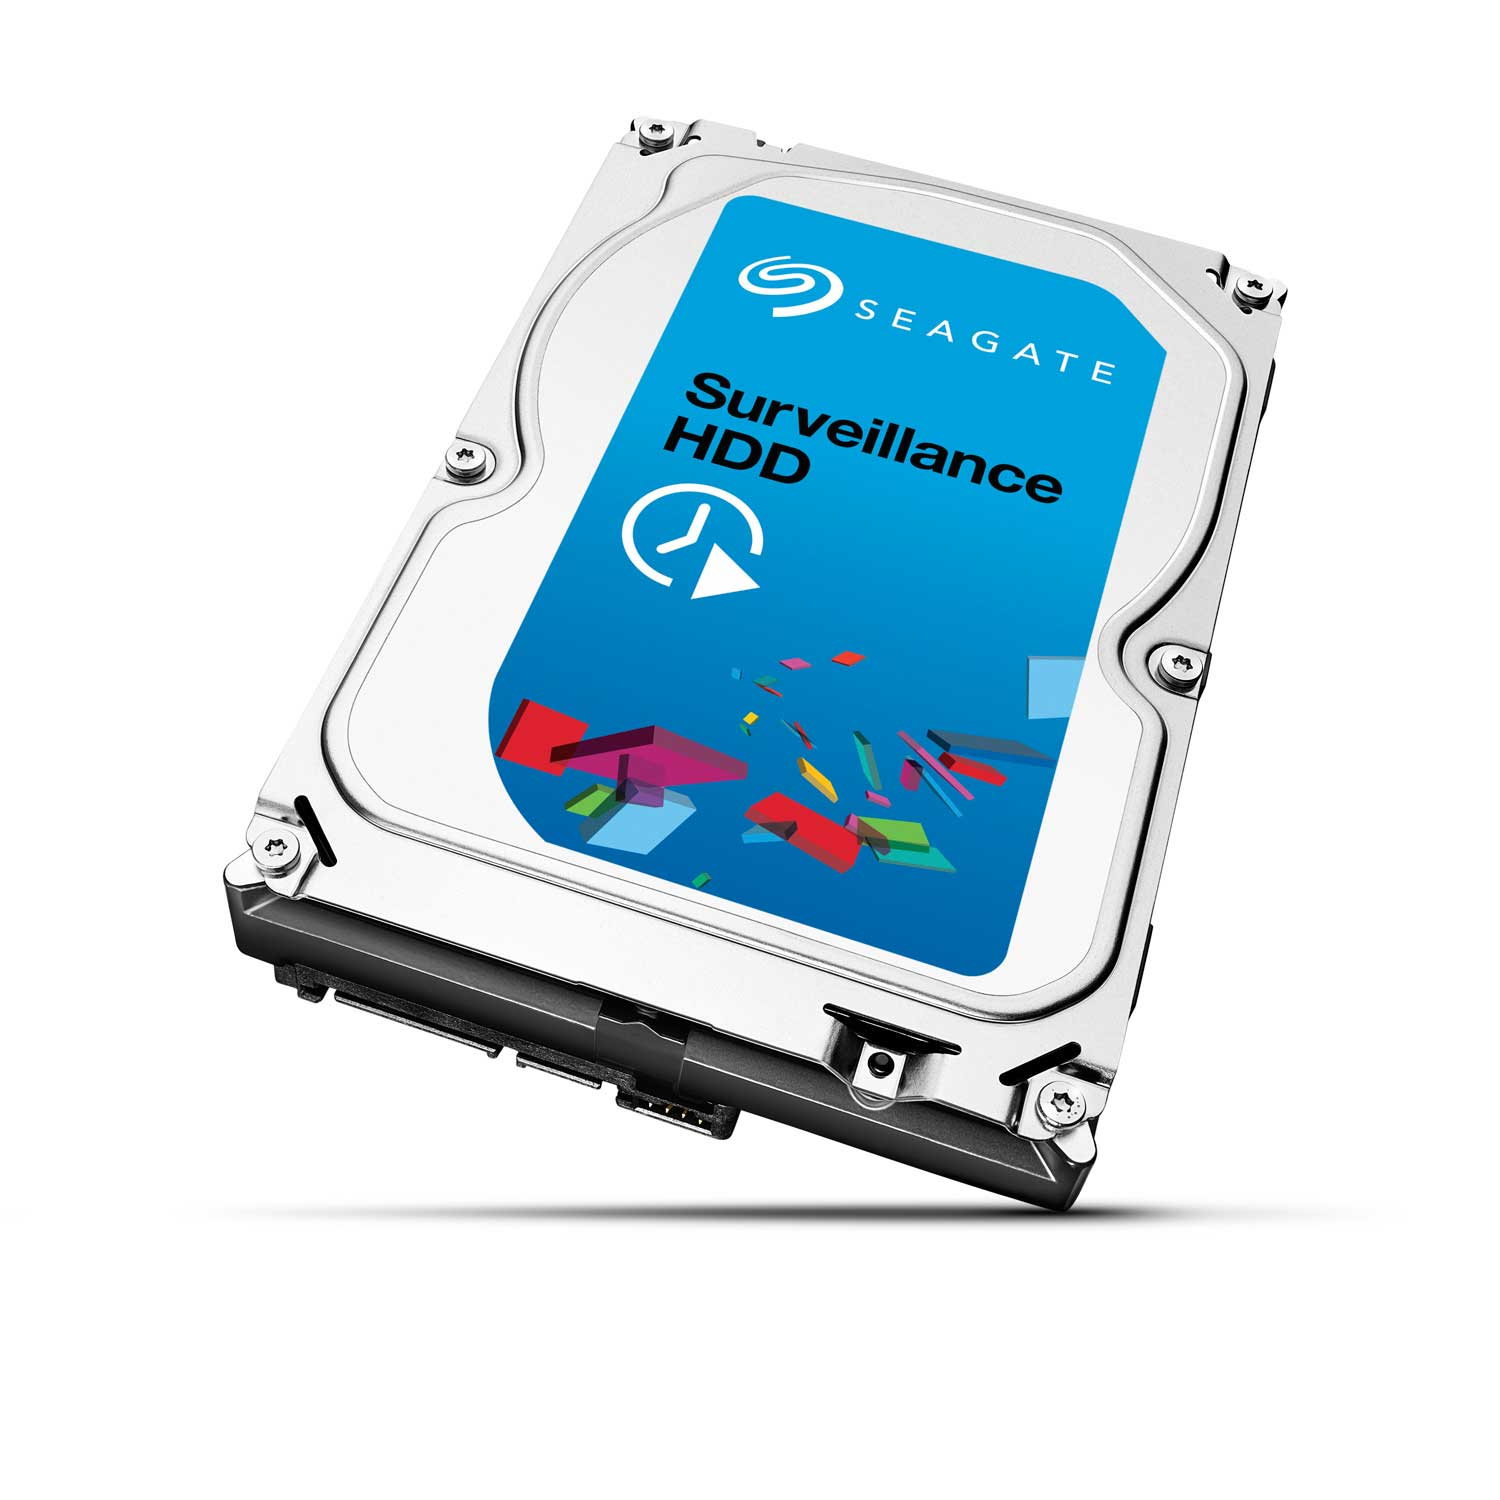 "Disque dur interne Seagate Surveillance HDD Series 3 To Disque Dur 3.5"" 3 To 7200 RPM 64 Mo Serial ATA 6 Gb/s (bulk) - (Garantie constructeur 3 ans)"